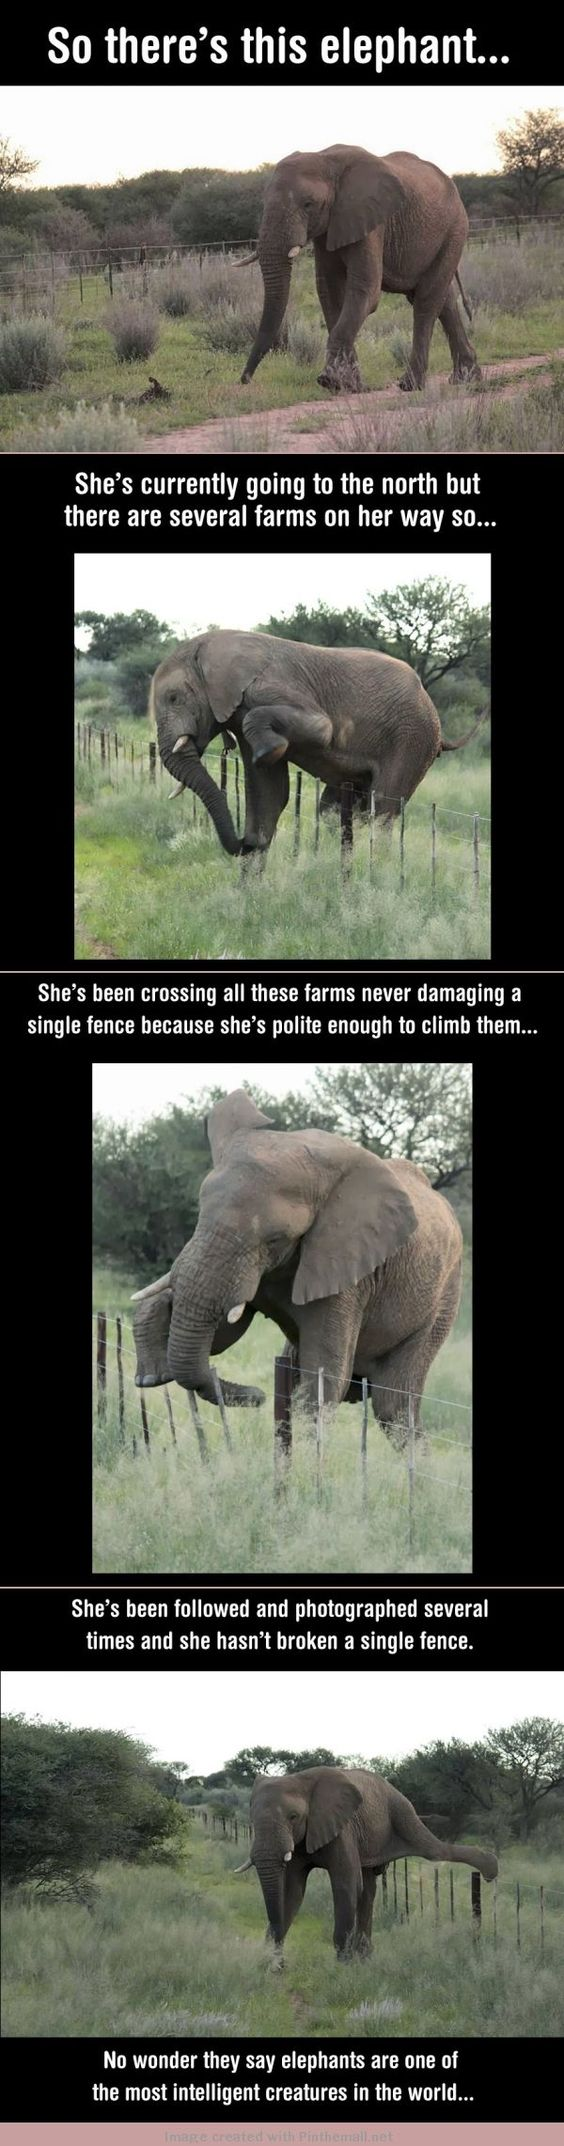 This polite elephant made us awww